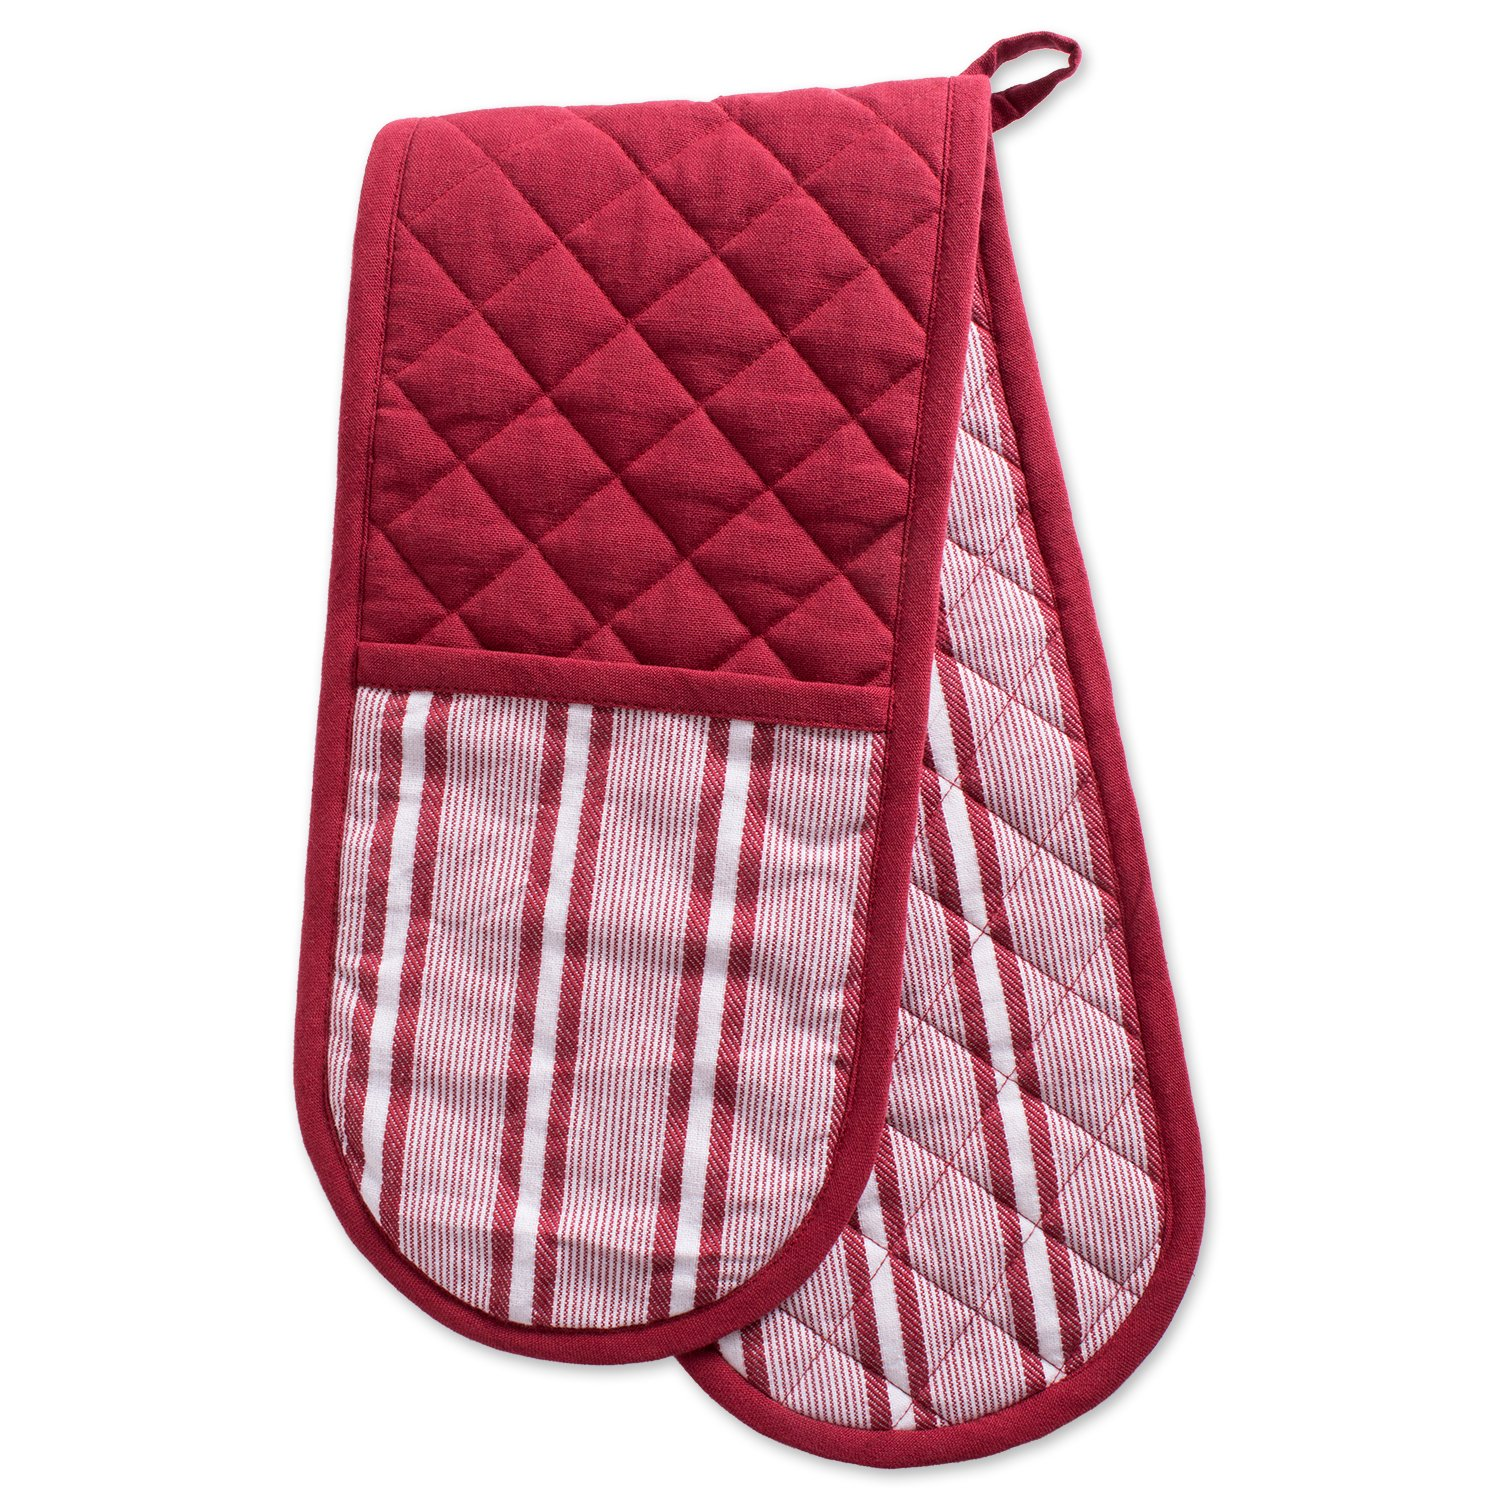 """DII Cotton Stripe Quilted Double Oven Mitt, 35 x 7.5"""", Machine Washable and Heat Resistant Kitchen Moppine for Everyday Cooking and Baking-Barn Red"""